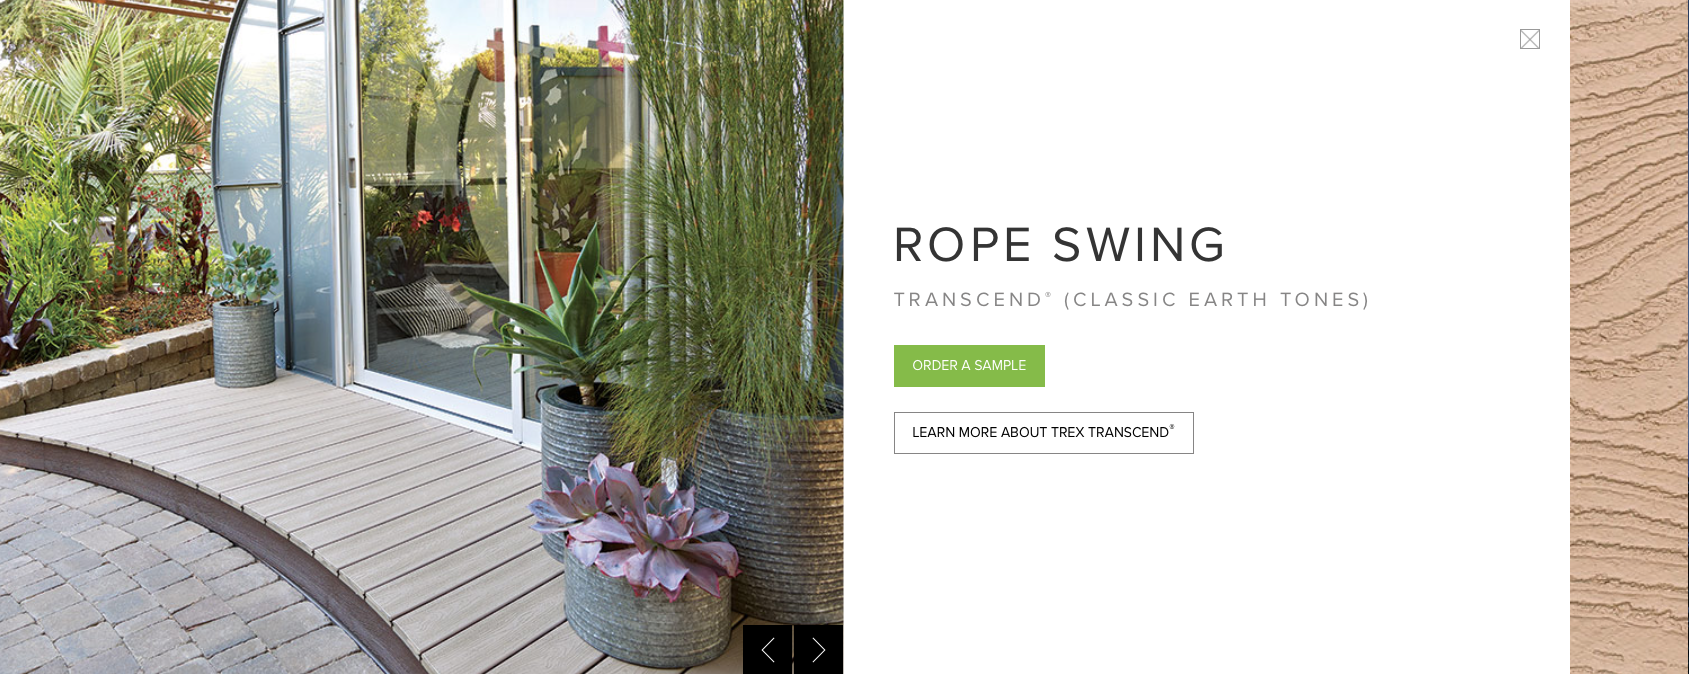 Trex Transcend (Classic Earth Tones) Rope Swing